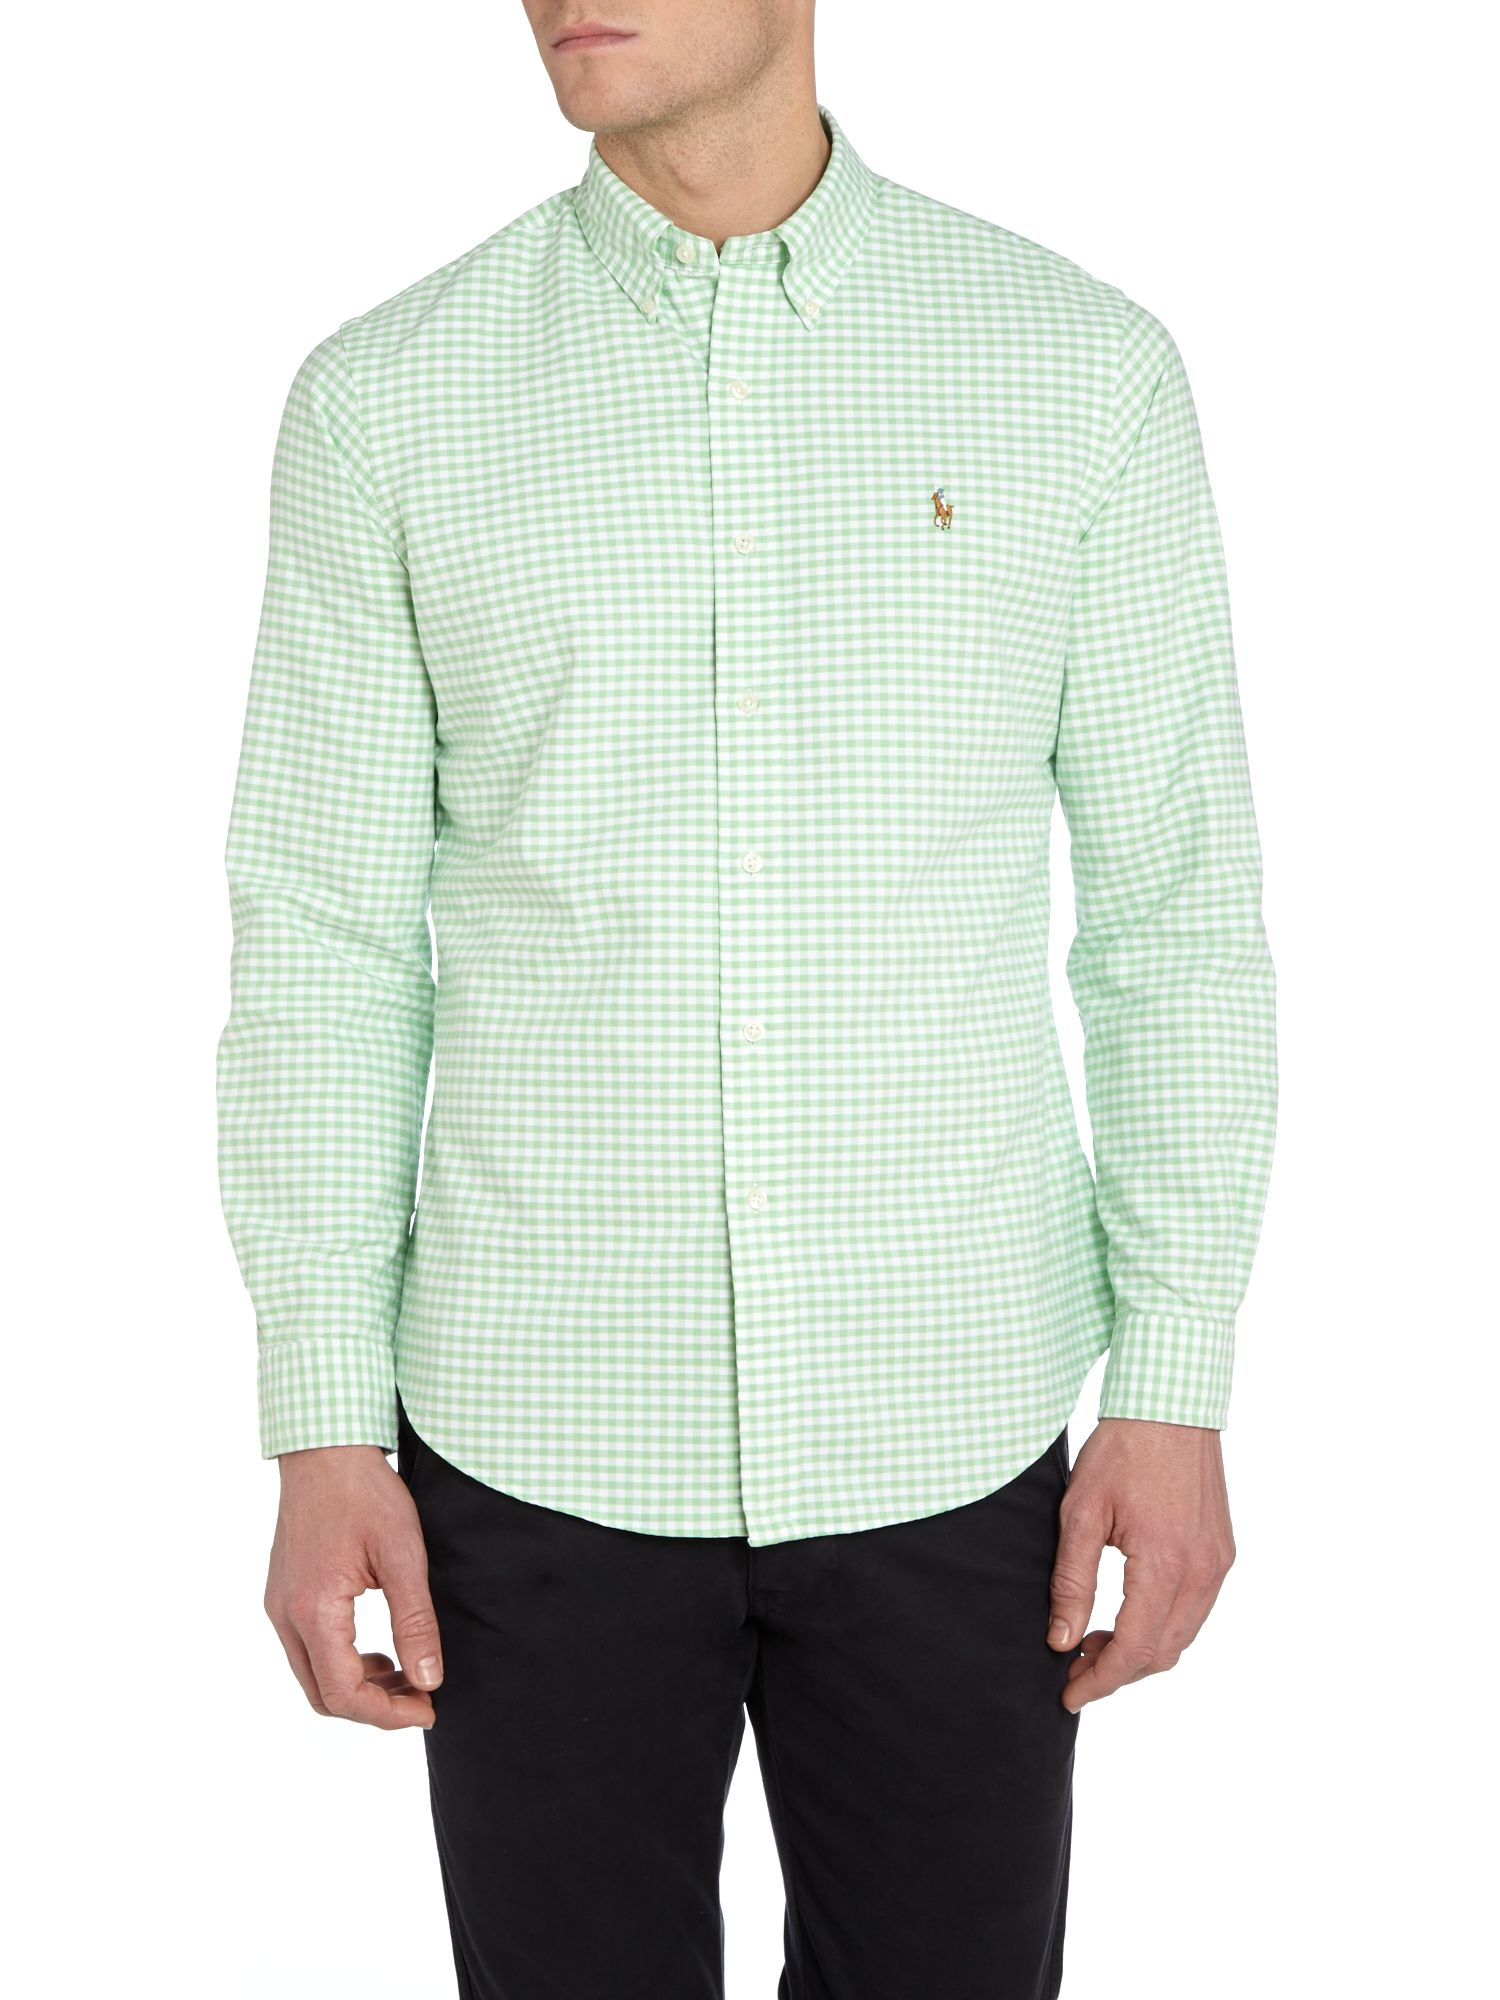 Classic long sleeve gingham shirt